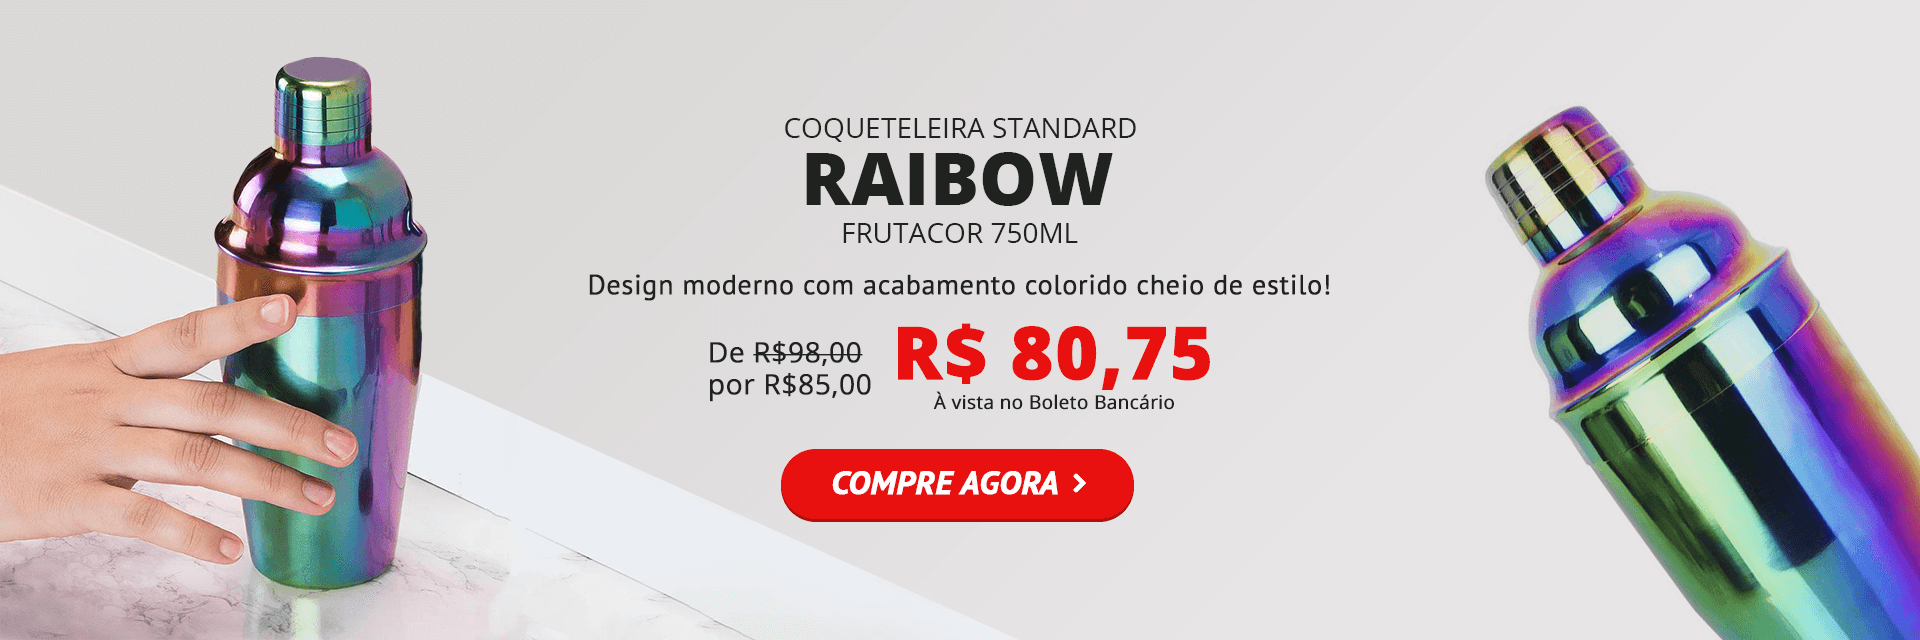 Coqueteleira Colorida Rainbow Frutacor 750ml